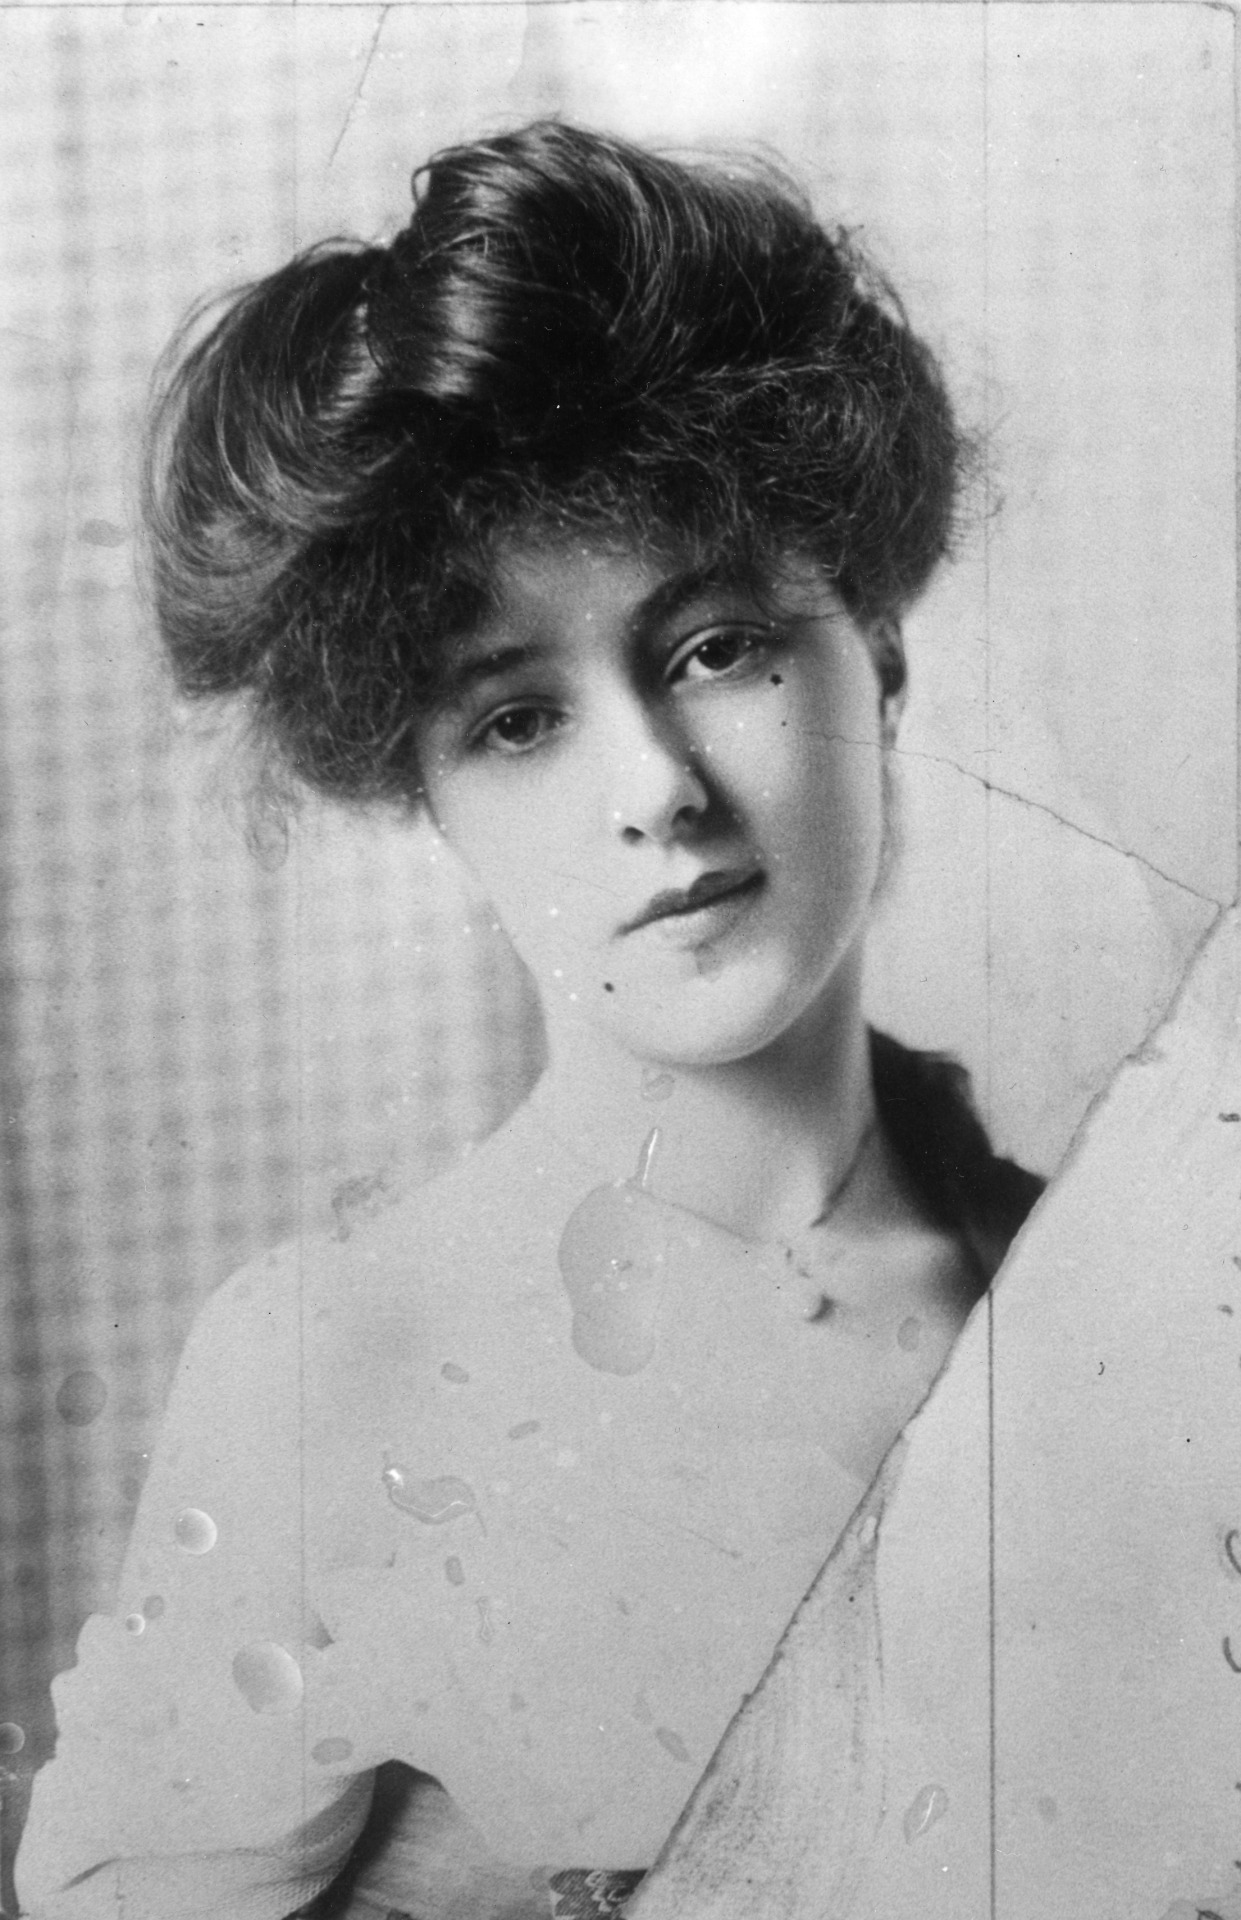 Evelyn Nesbit Thaw Wife Of Harry K Thaw In An Undated